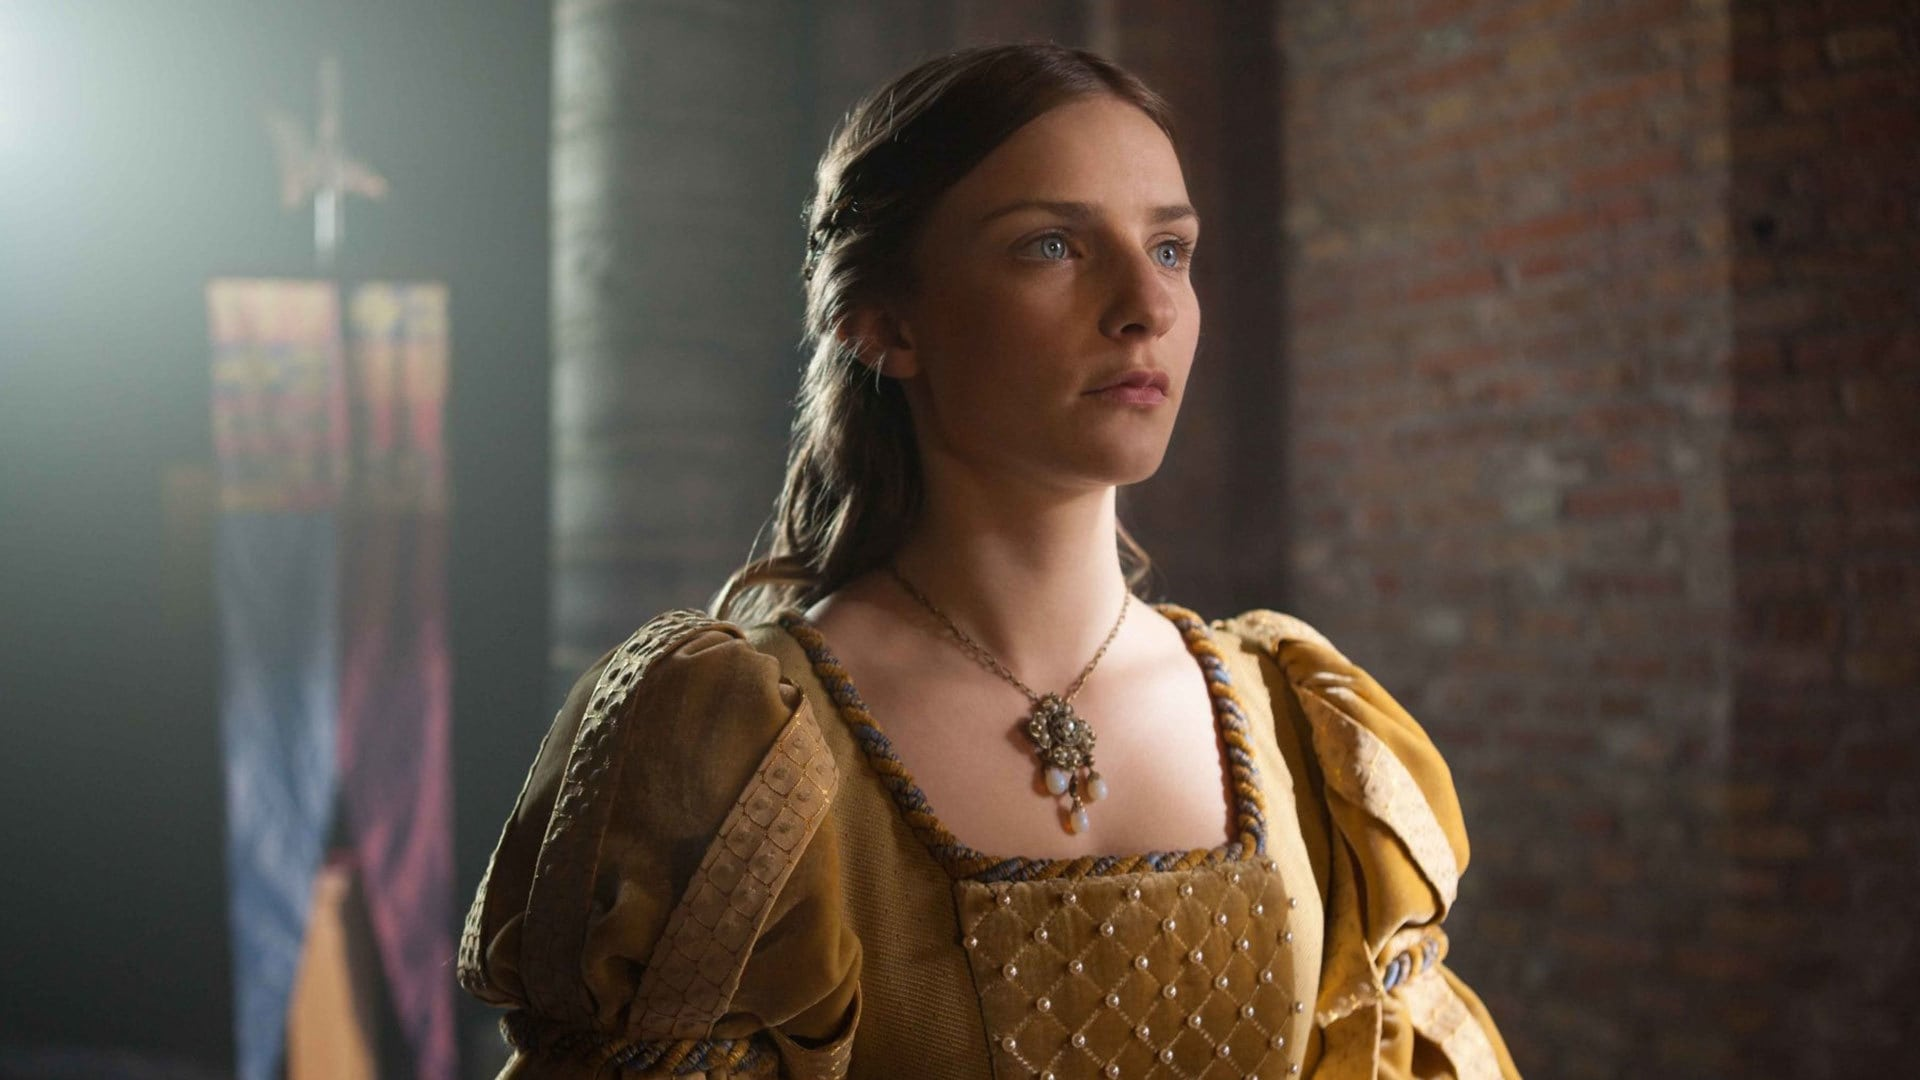 With Aneurin Barnard Rebecca Ferguson Amanda Hale Faye Marsay Three different yet equally relentless women vie for the throne in 15th Century England